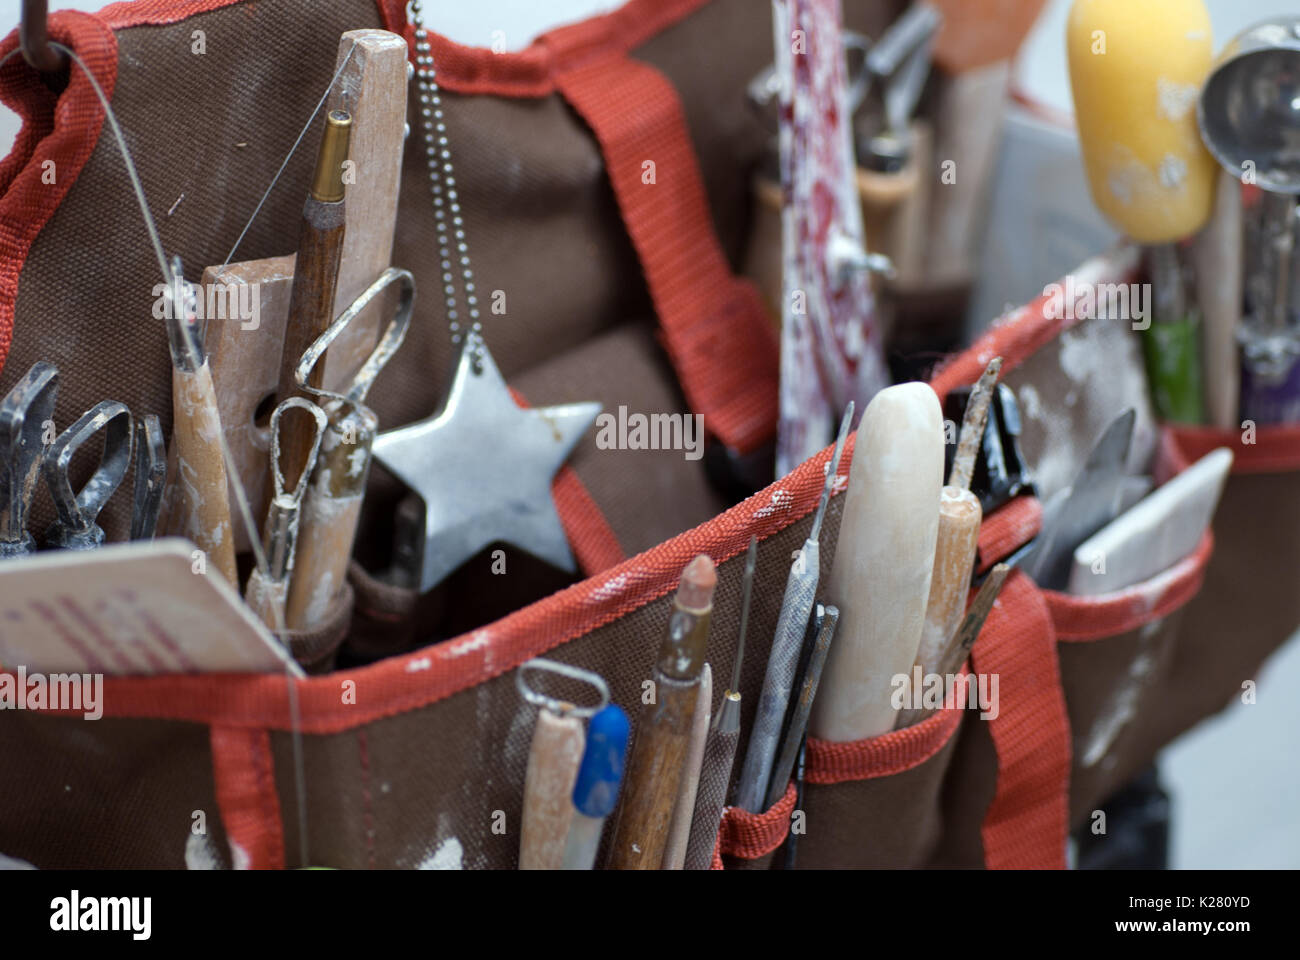 Artist tote organizer filled with pottery tools - Stock Image